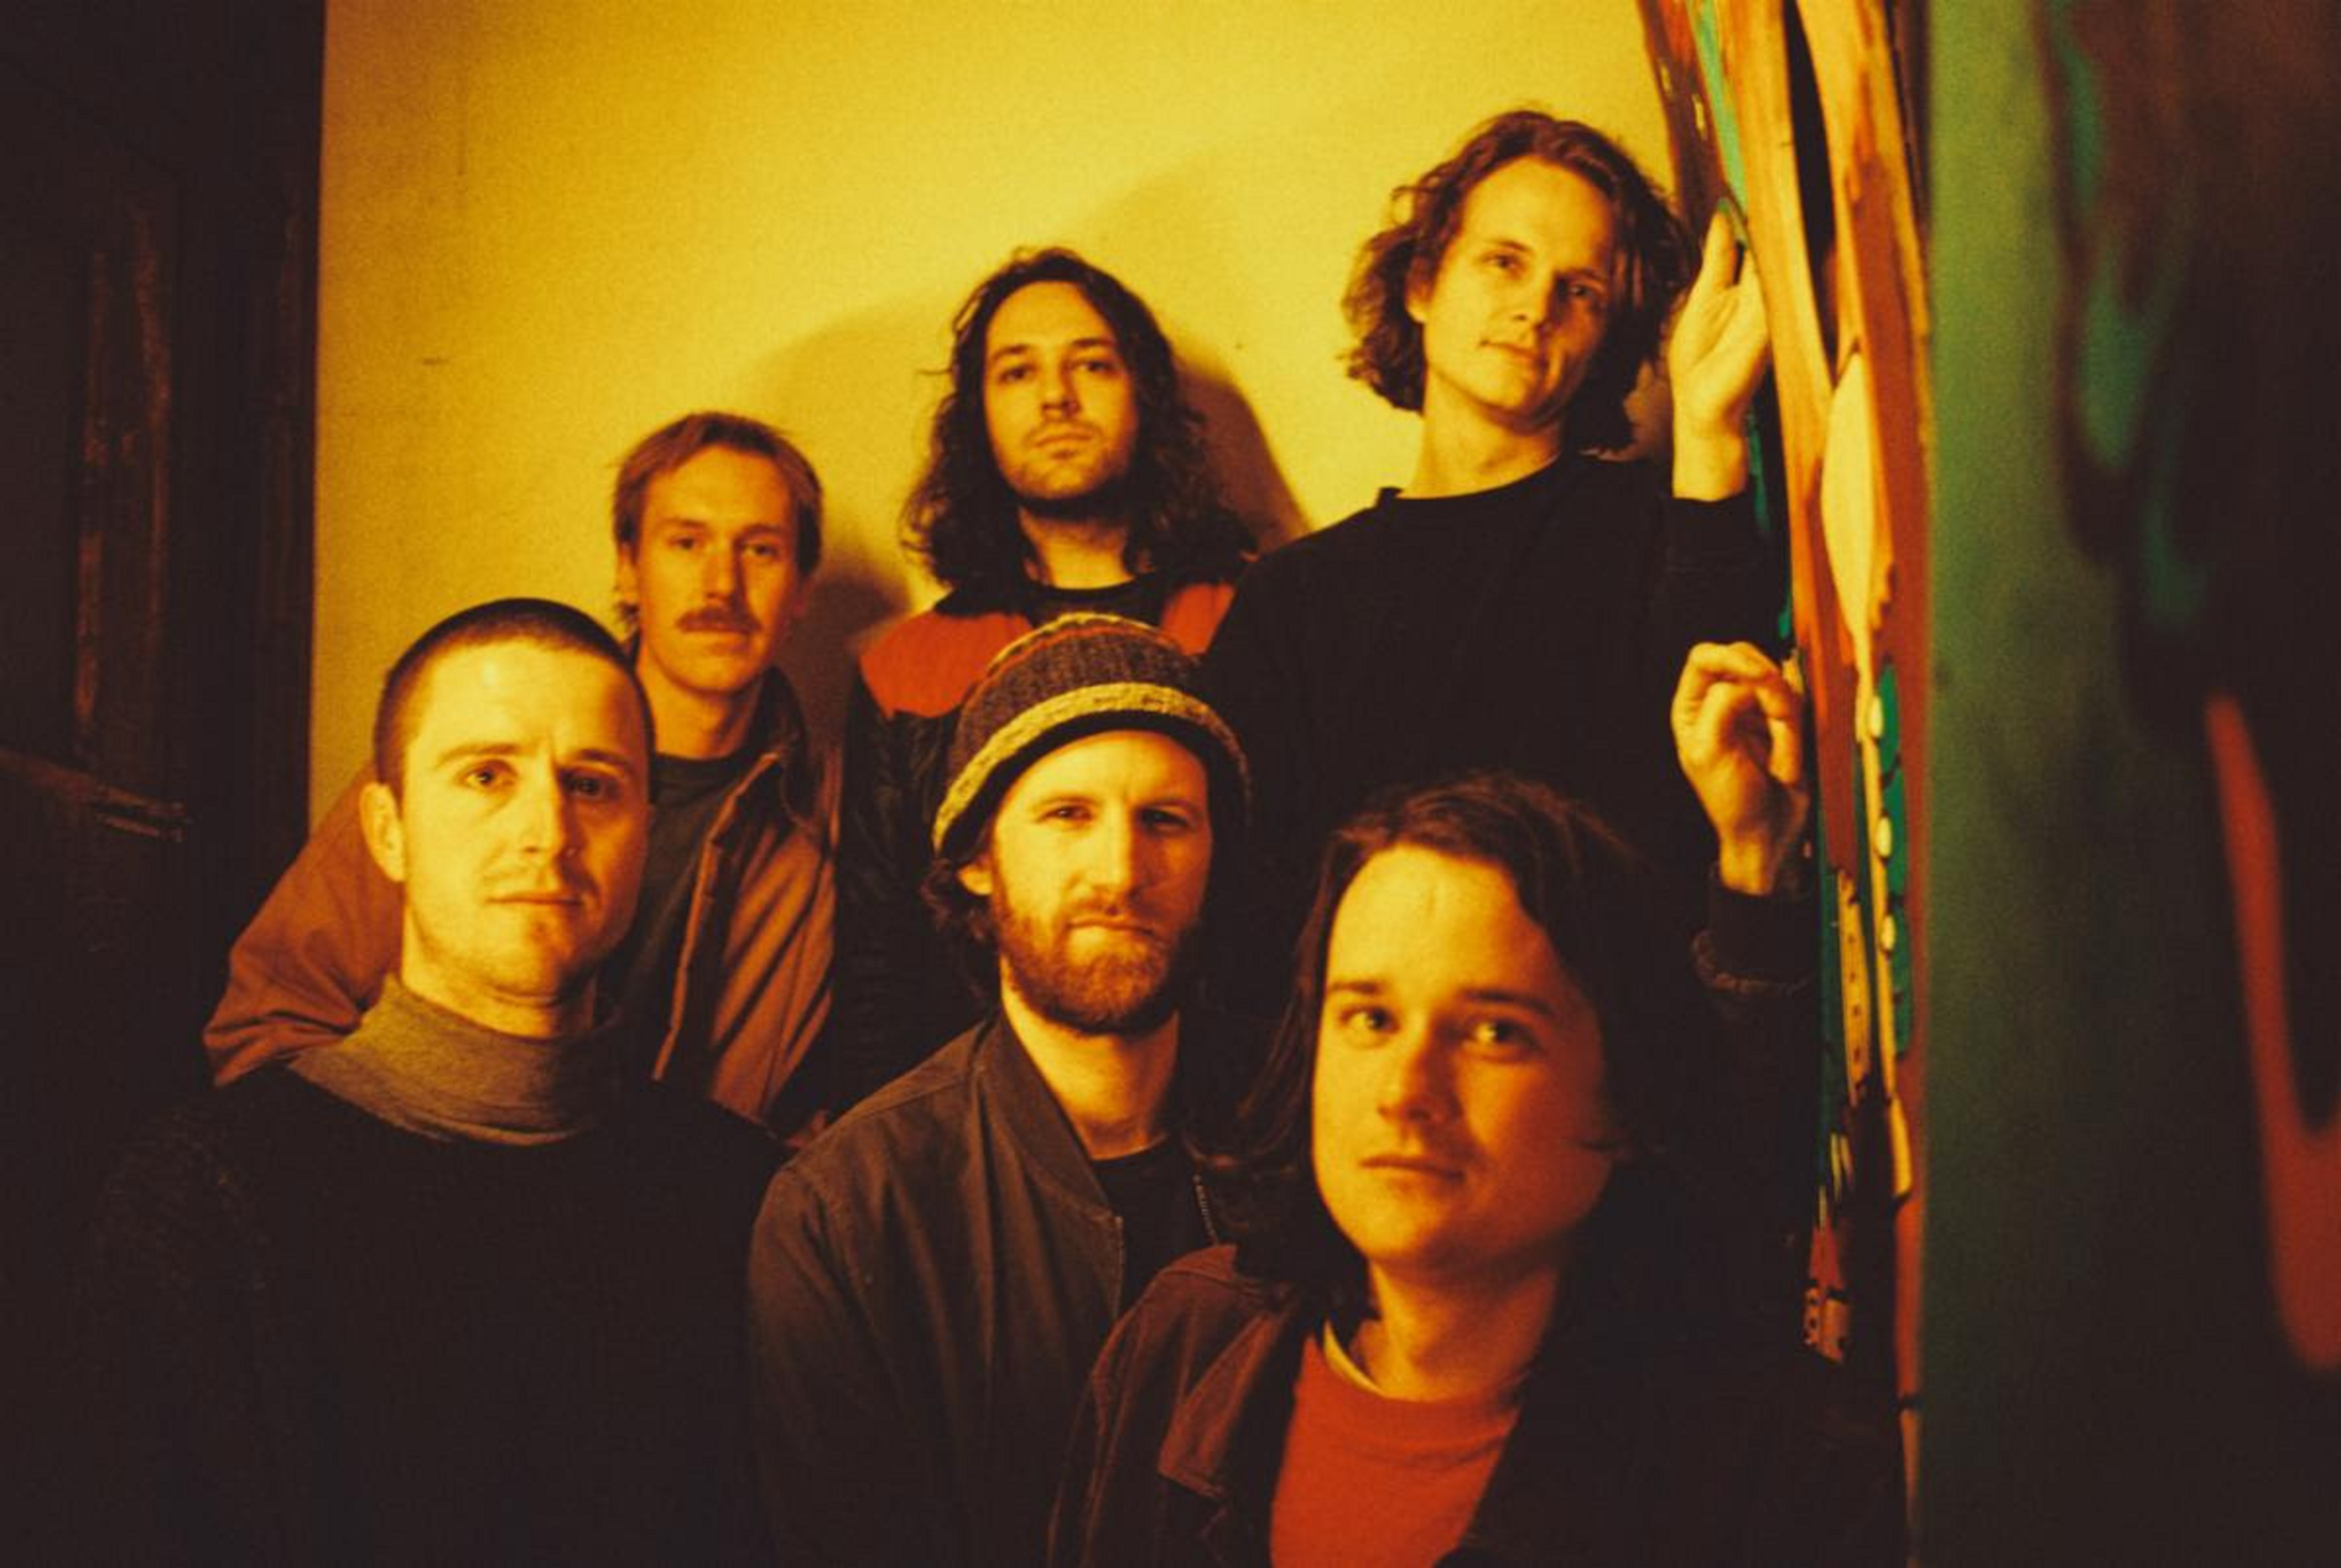 King Gizzard & The Lizard Wizard announces new album